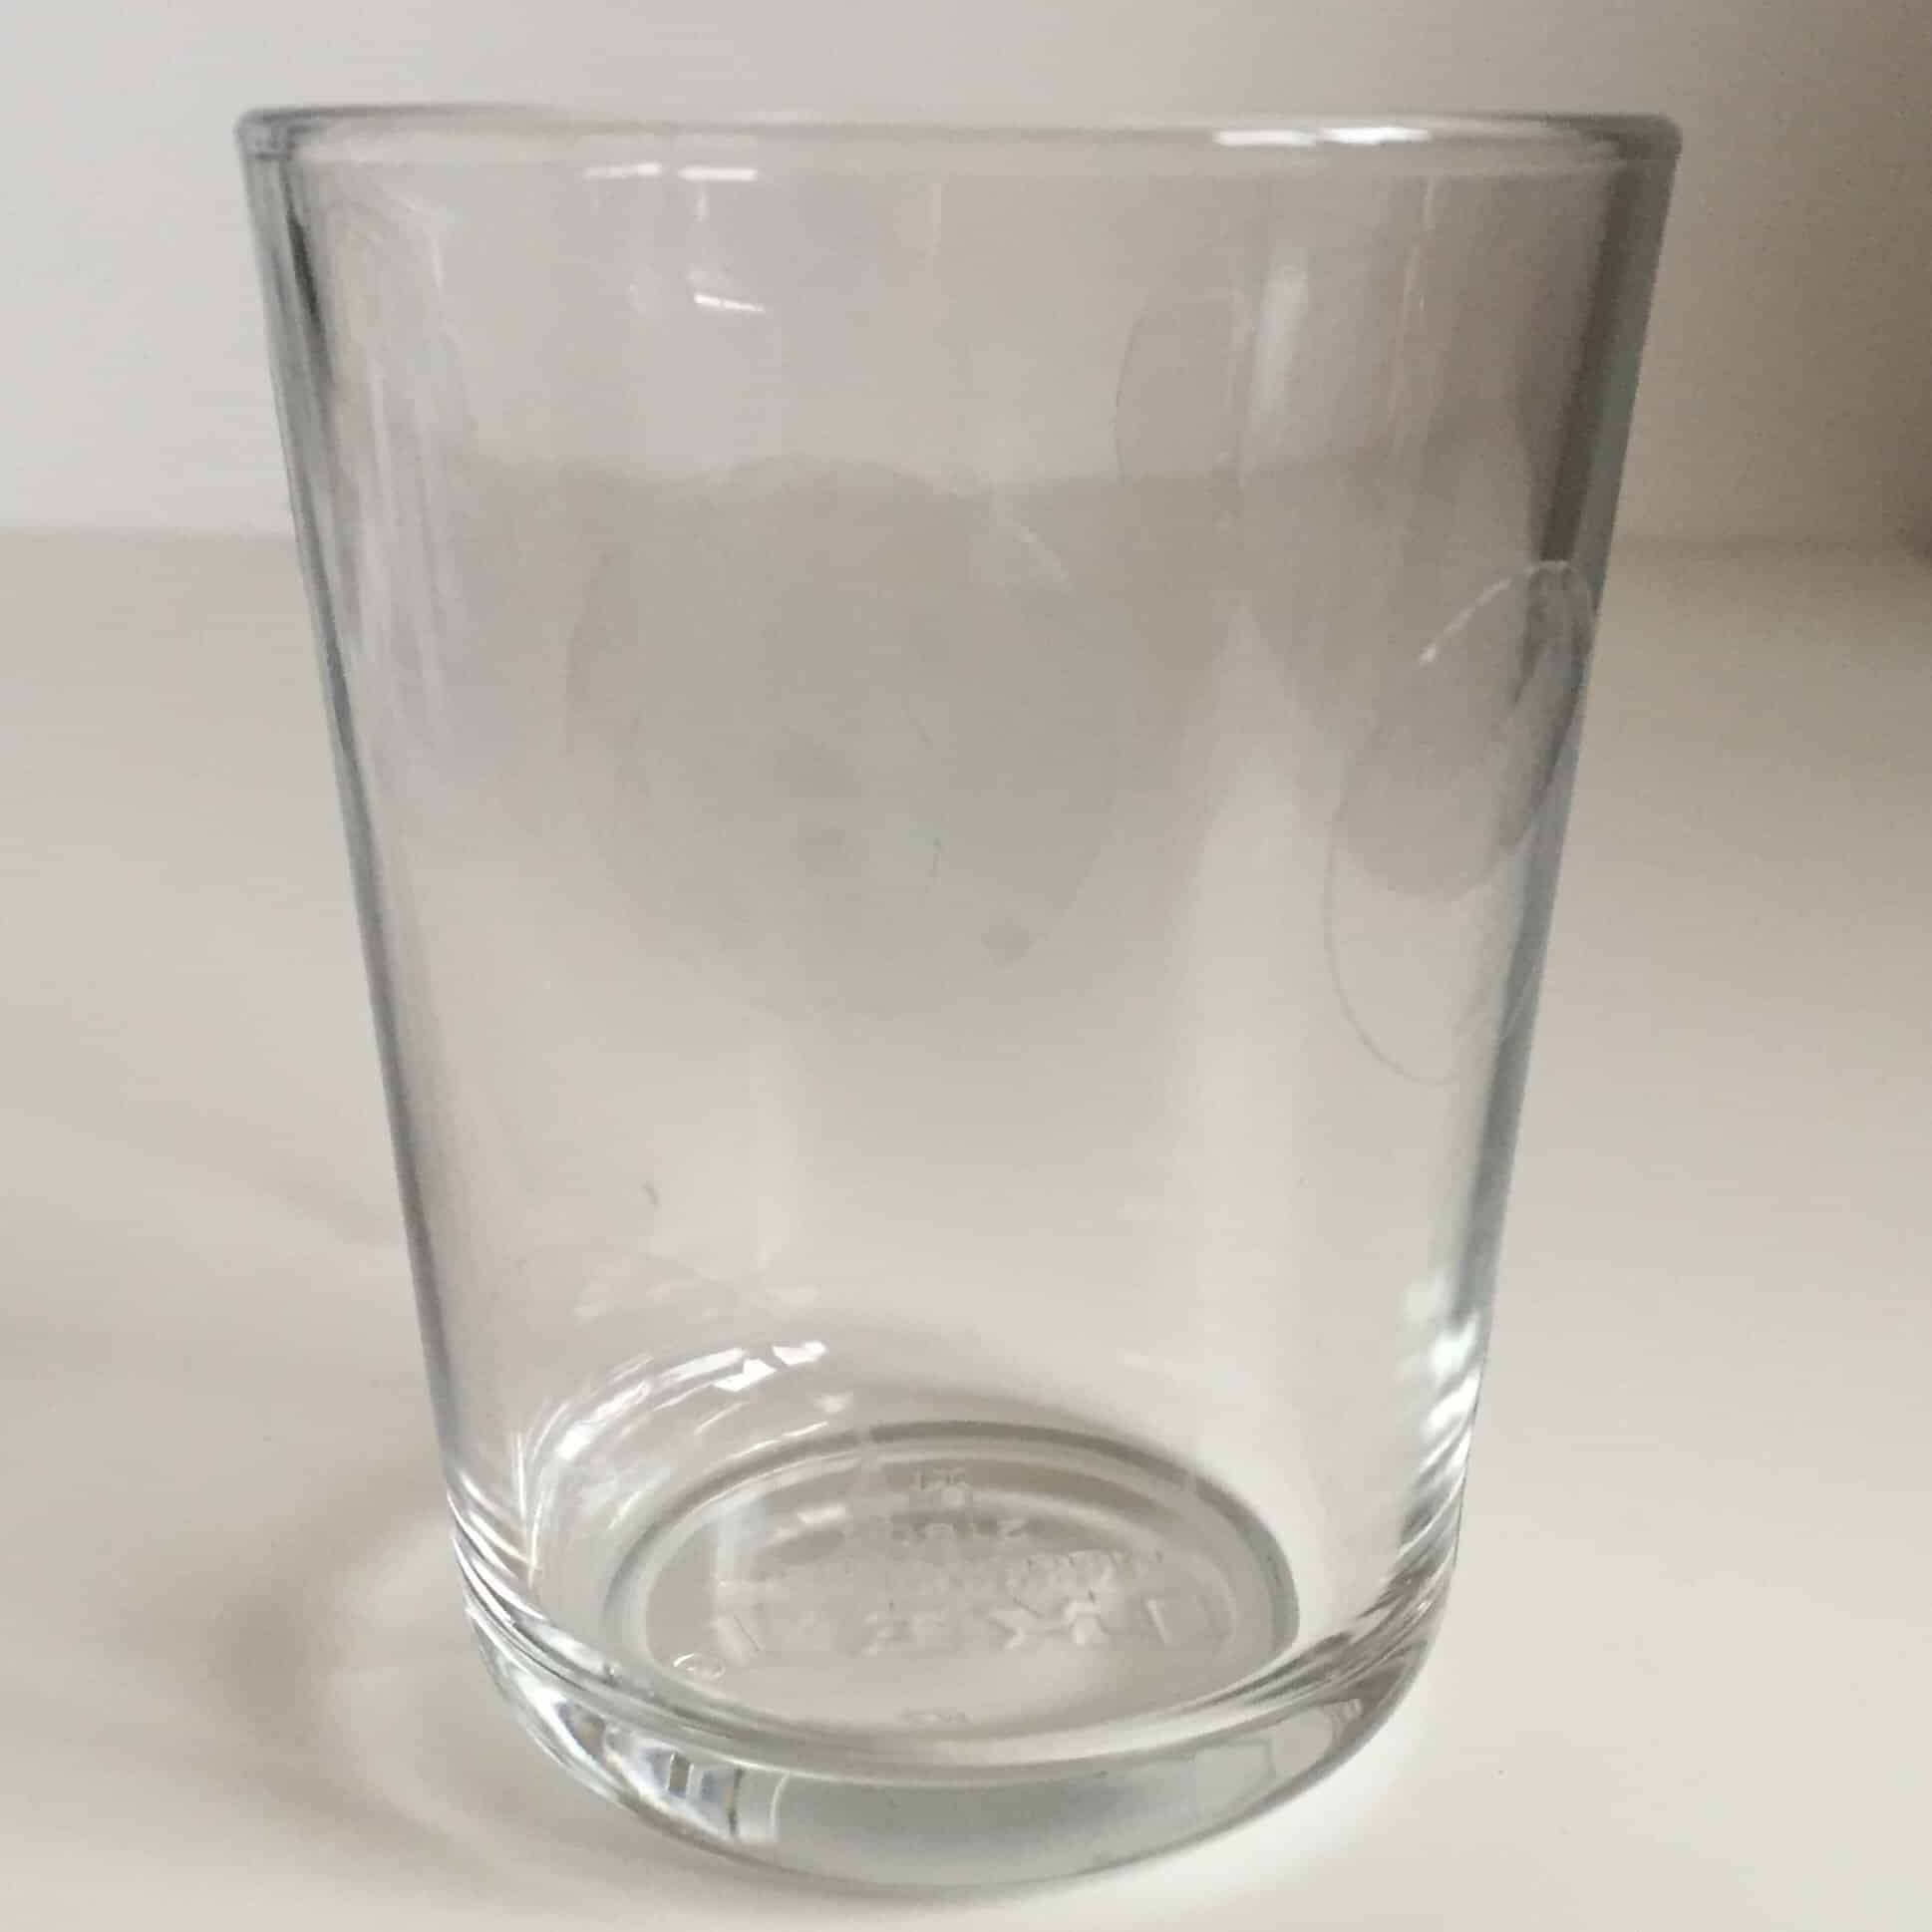 Glass with clear sticky dots